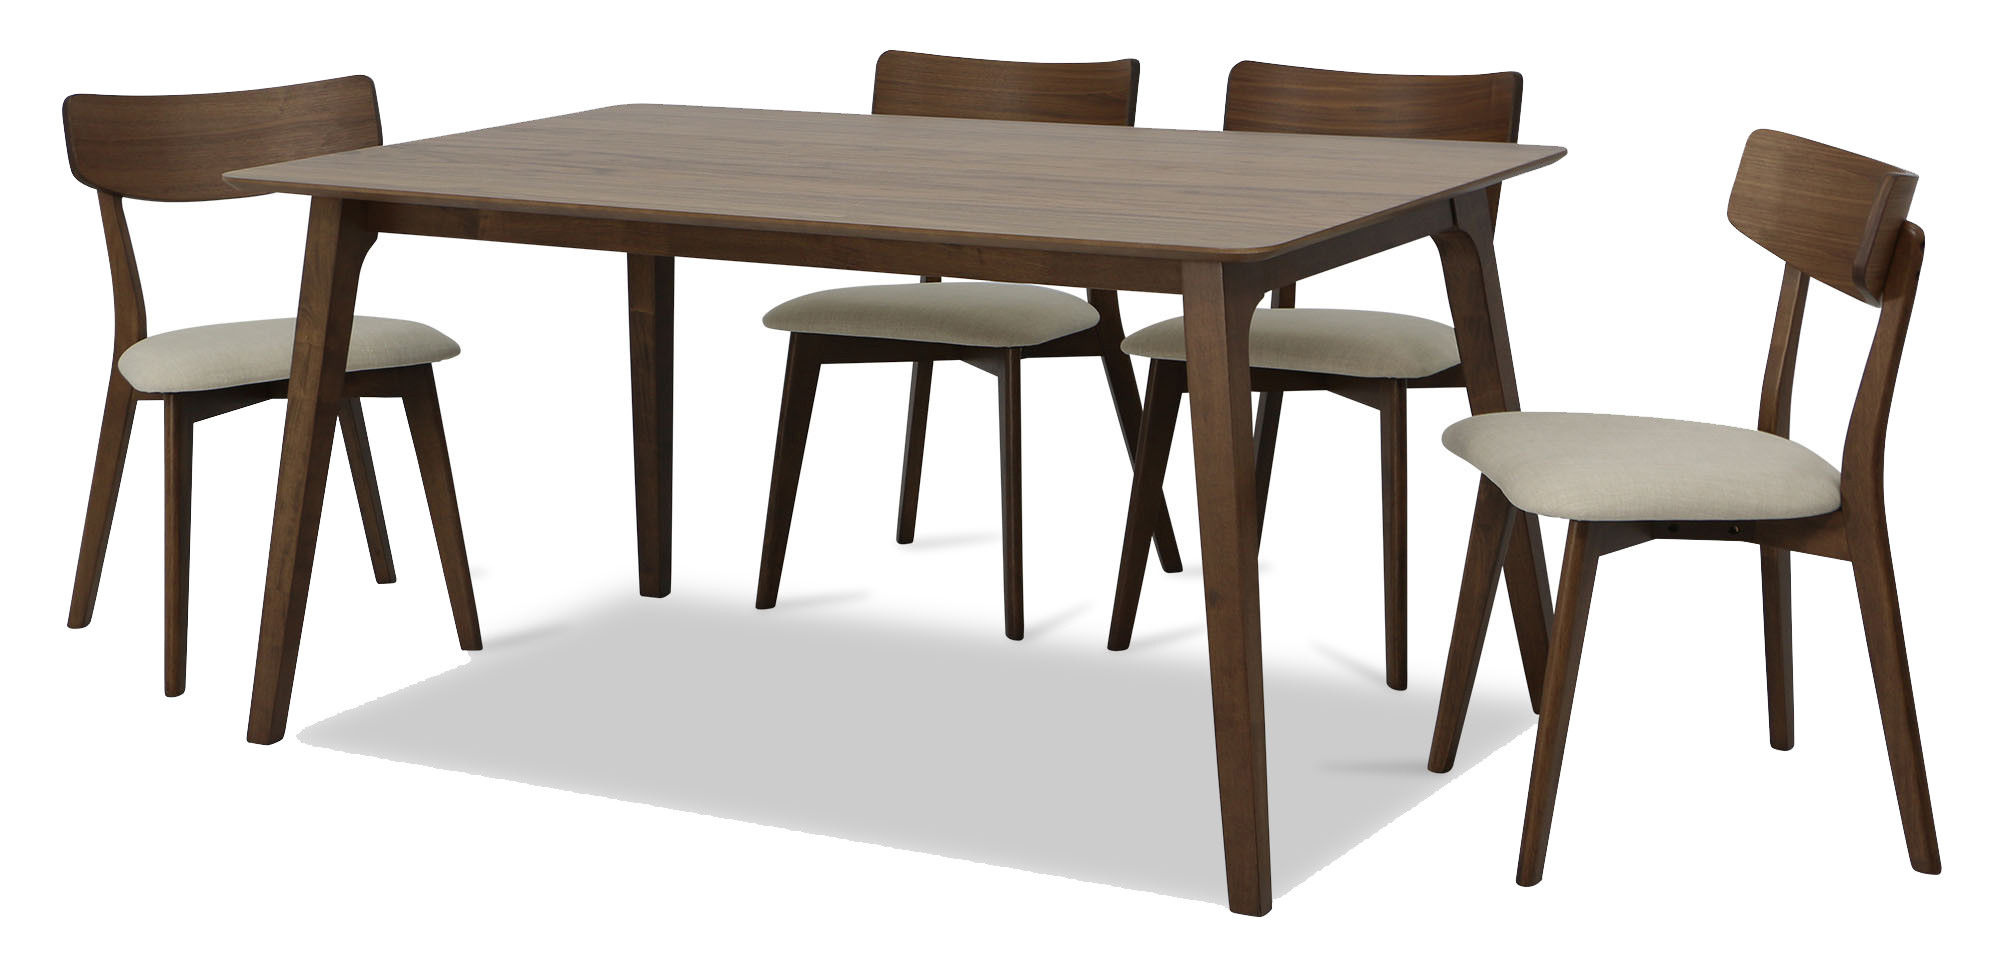 Loto dining table set c 1 4 dining sets dining room for 4 dining room table